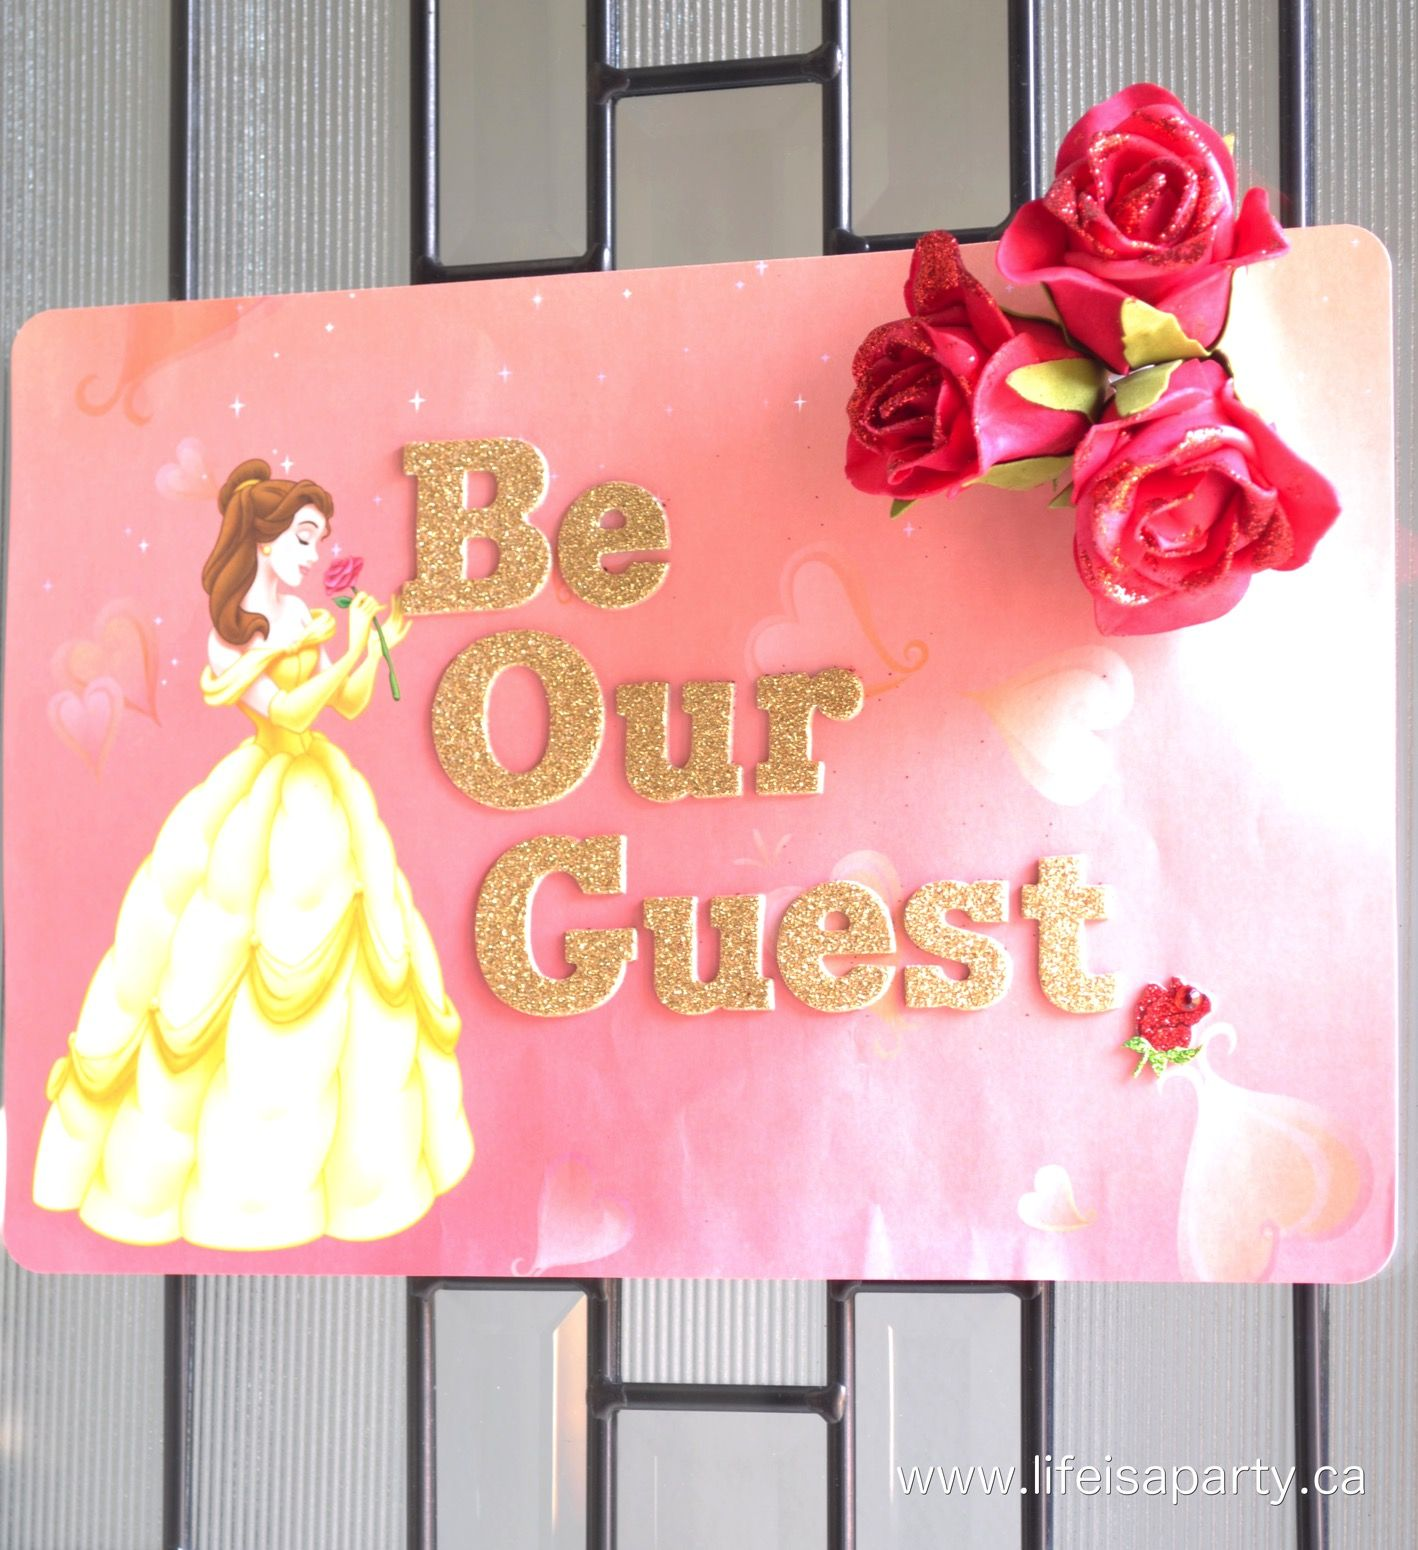 Beauty And The Beast Party Party Ideas Pinterest